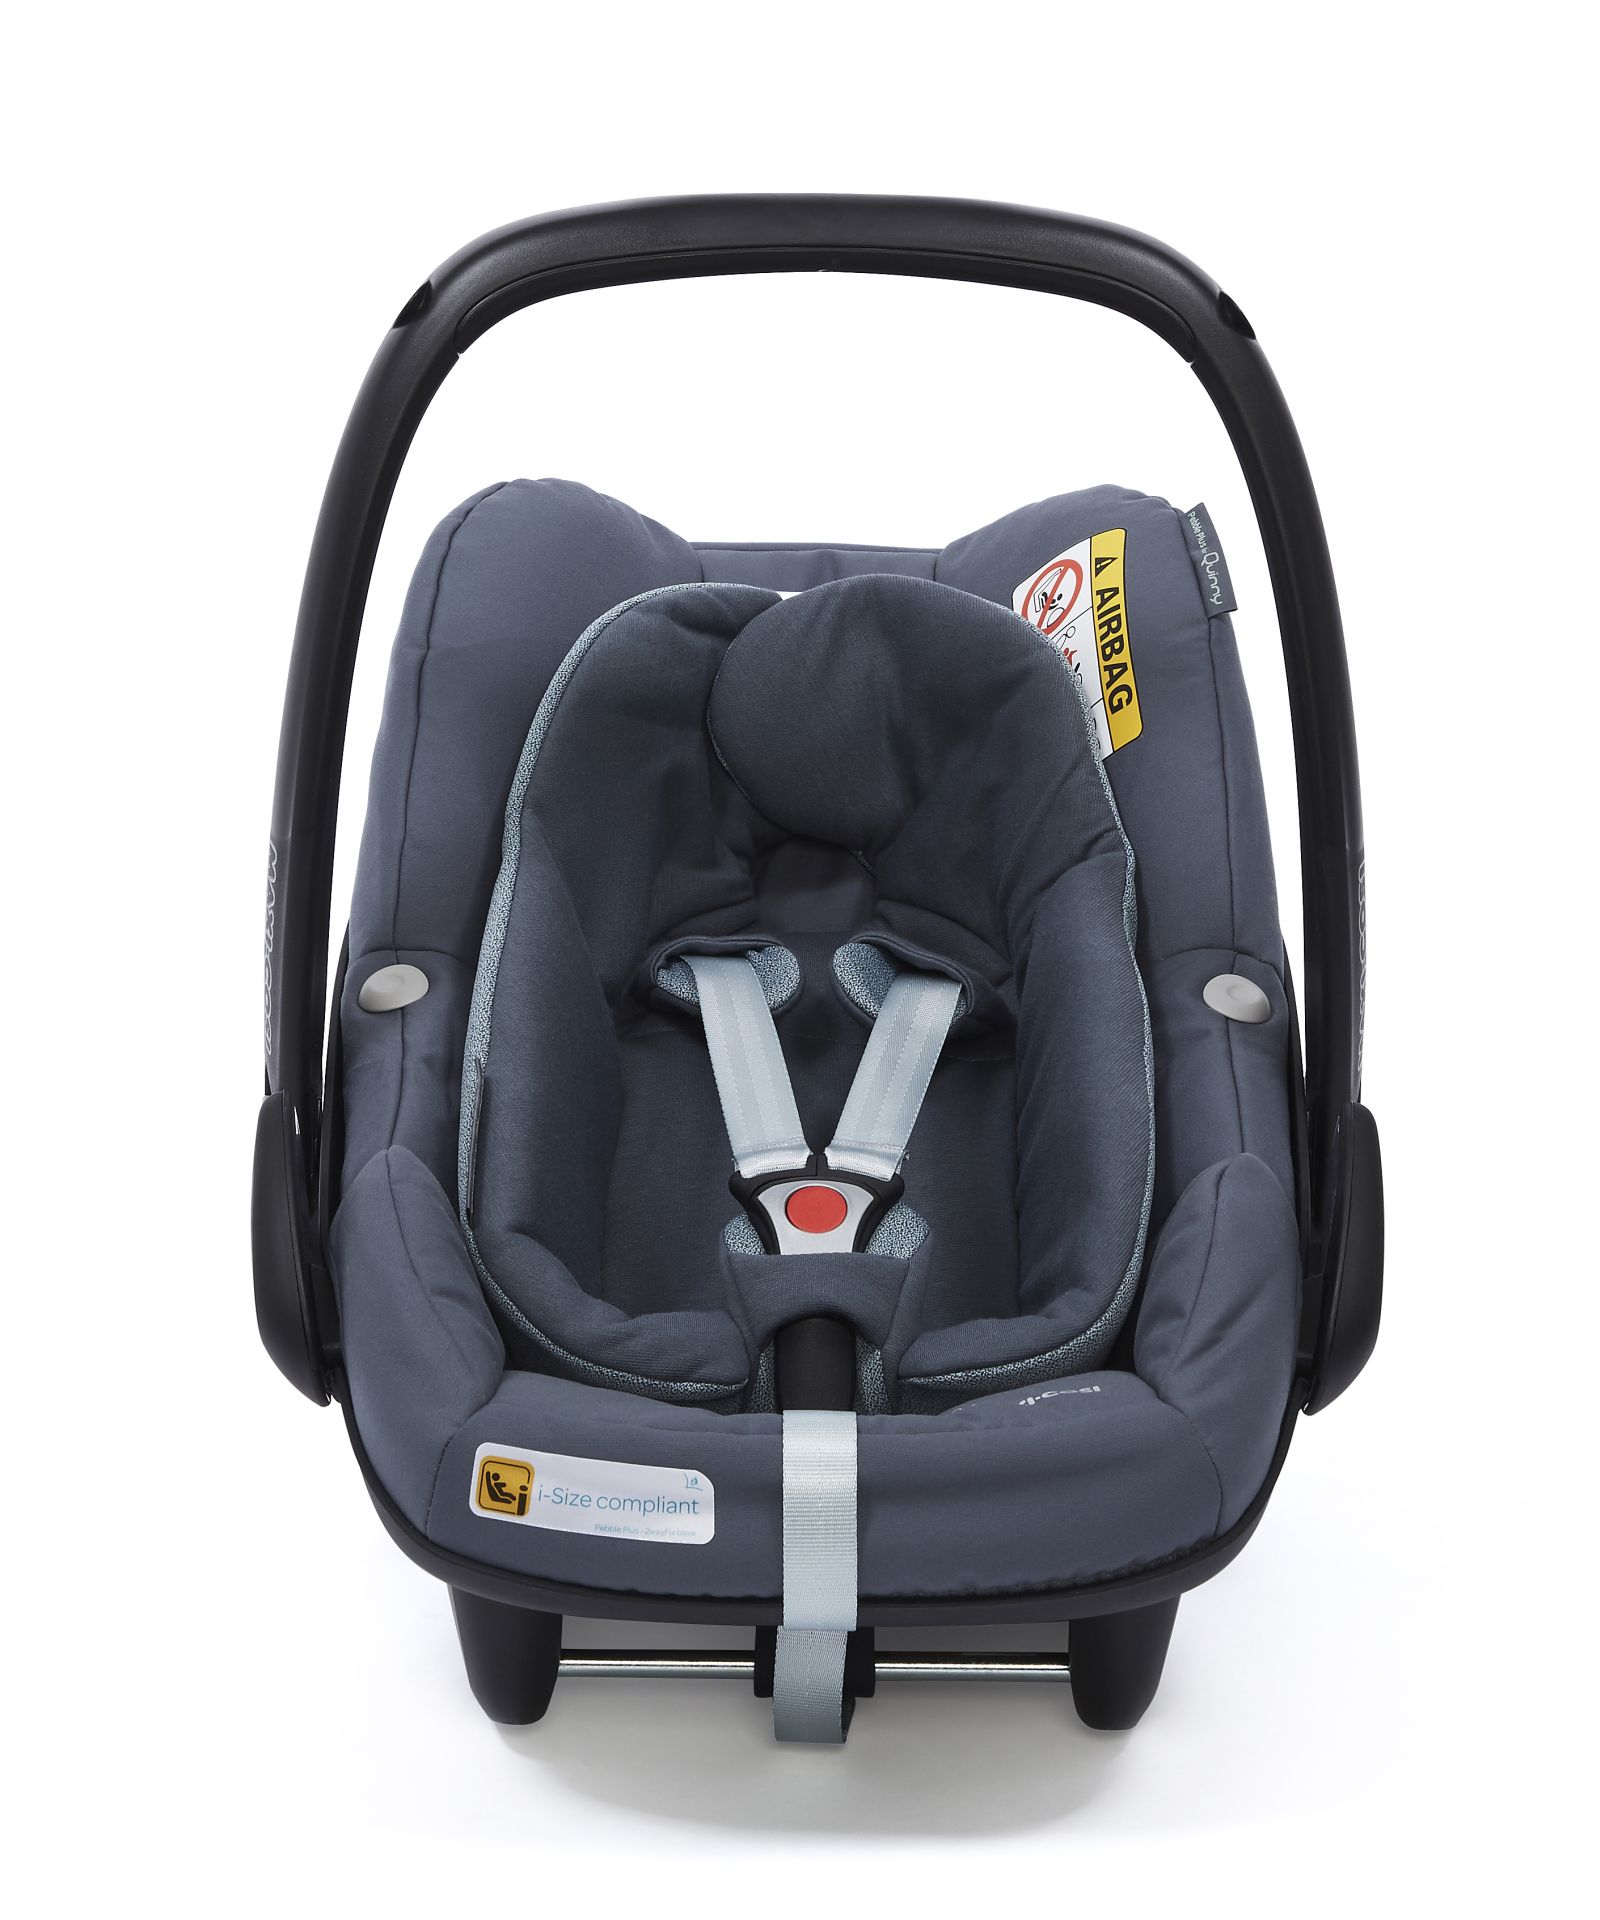 maxi cosi infant car seat pebble plus 2018 graphite buy at kidsroom car seats. Black Bedroom Furniture Sets. Home Design Ideas